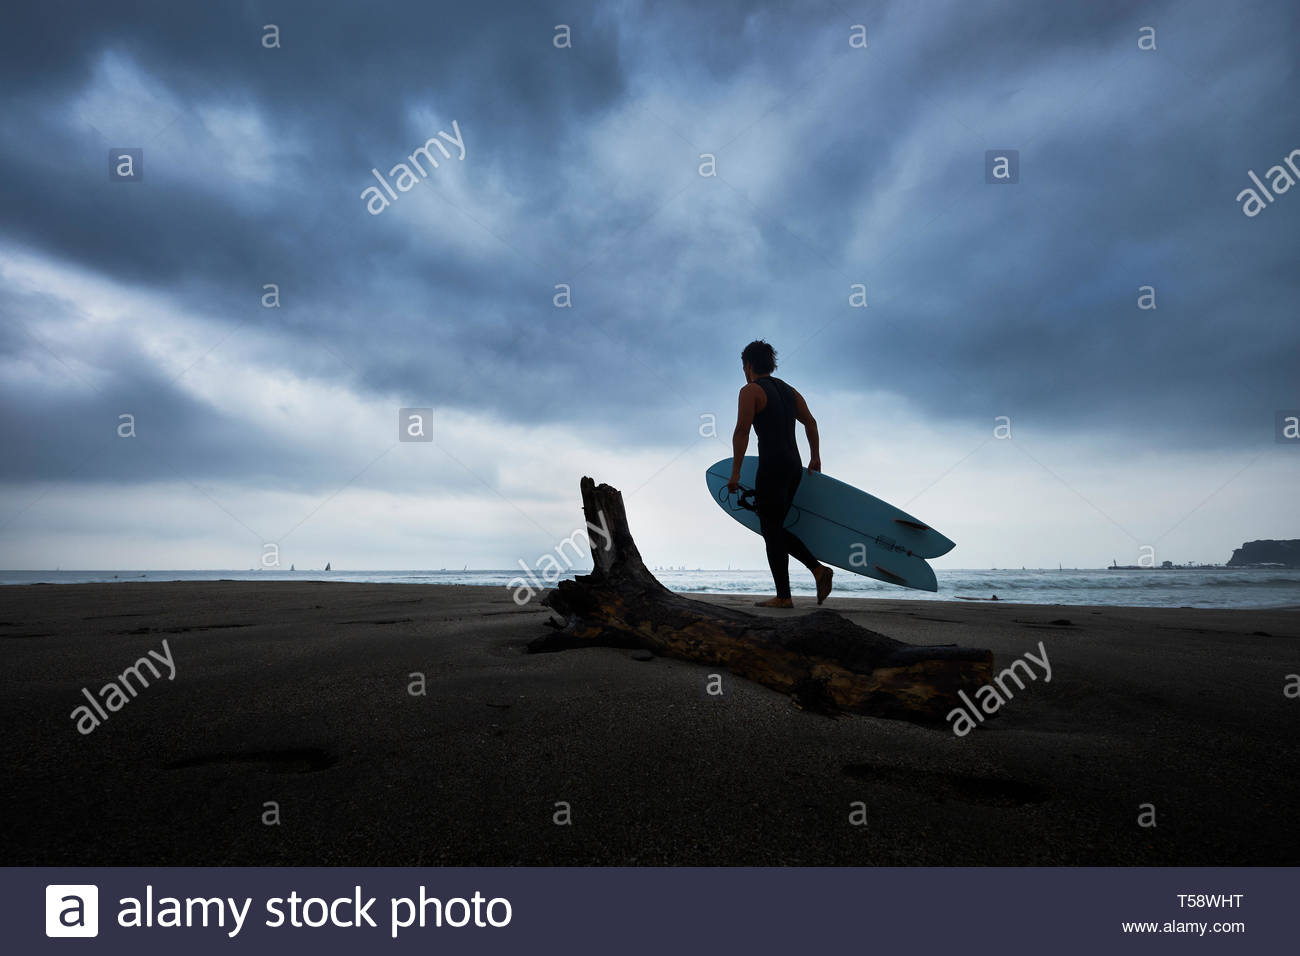 Surfer on the beach and dramatic sky in Inamuragasaki - Stock Image